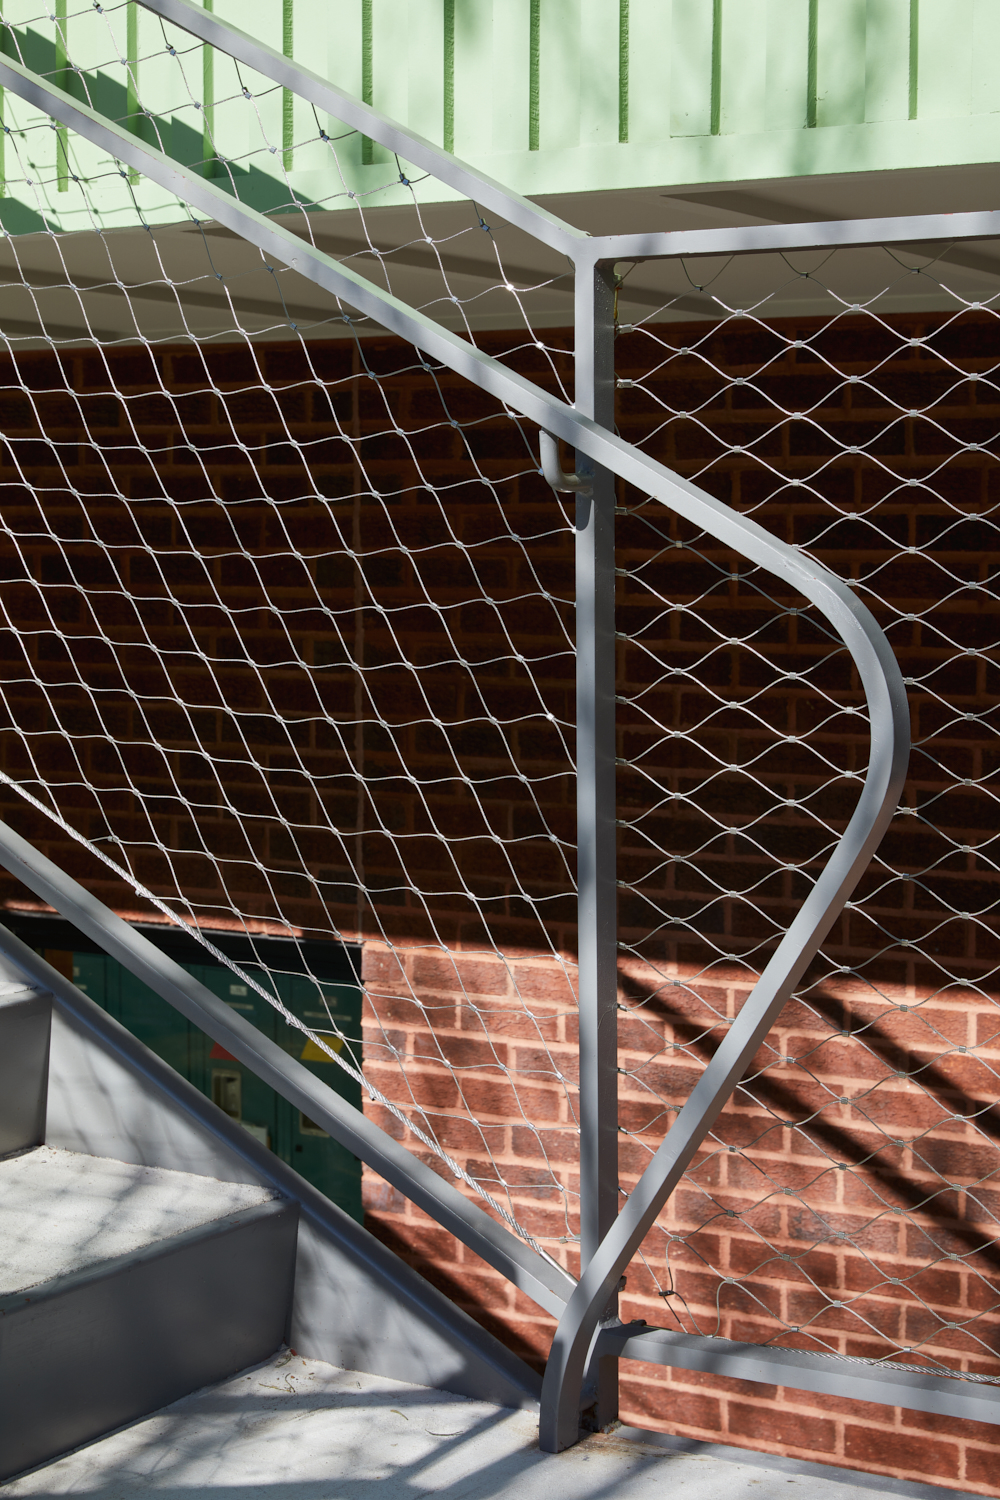 The concrete and steel stair is infilled with a durable stainless steel mesh photo: Leonid Furmansky